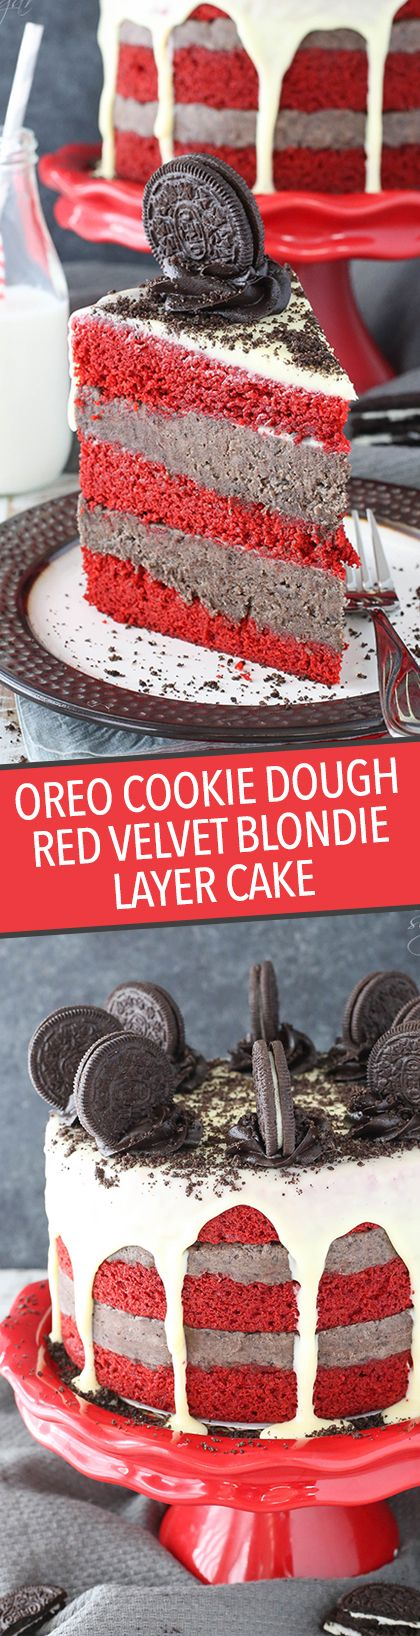 This Oreo Cookie Dough Red Velvet Blondie Layer Cake is totally over the top – but you are definitely going to want some!  image: https://s.w.org/images/core/emoji/2.2.1/svg/1f642.svg     With layers of red velvet blondie and eggless oreo-filled cookie dough, it's a deliciously dense cake.